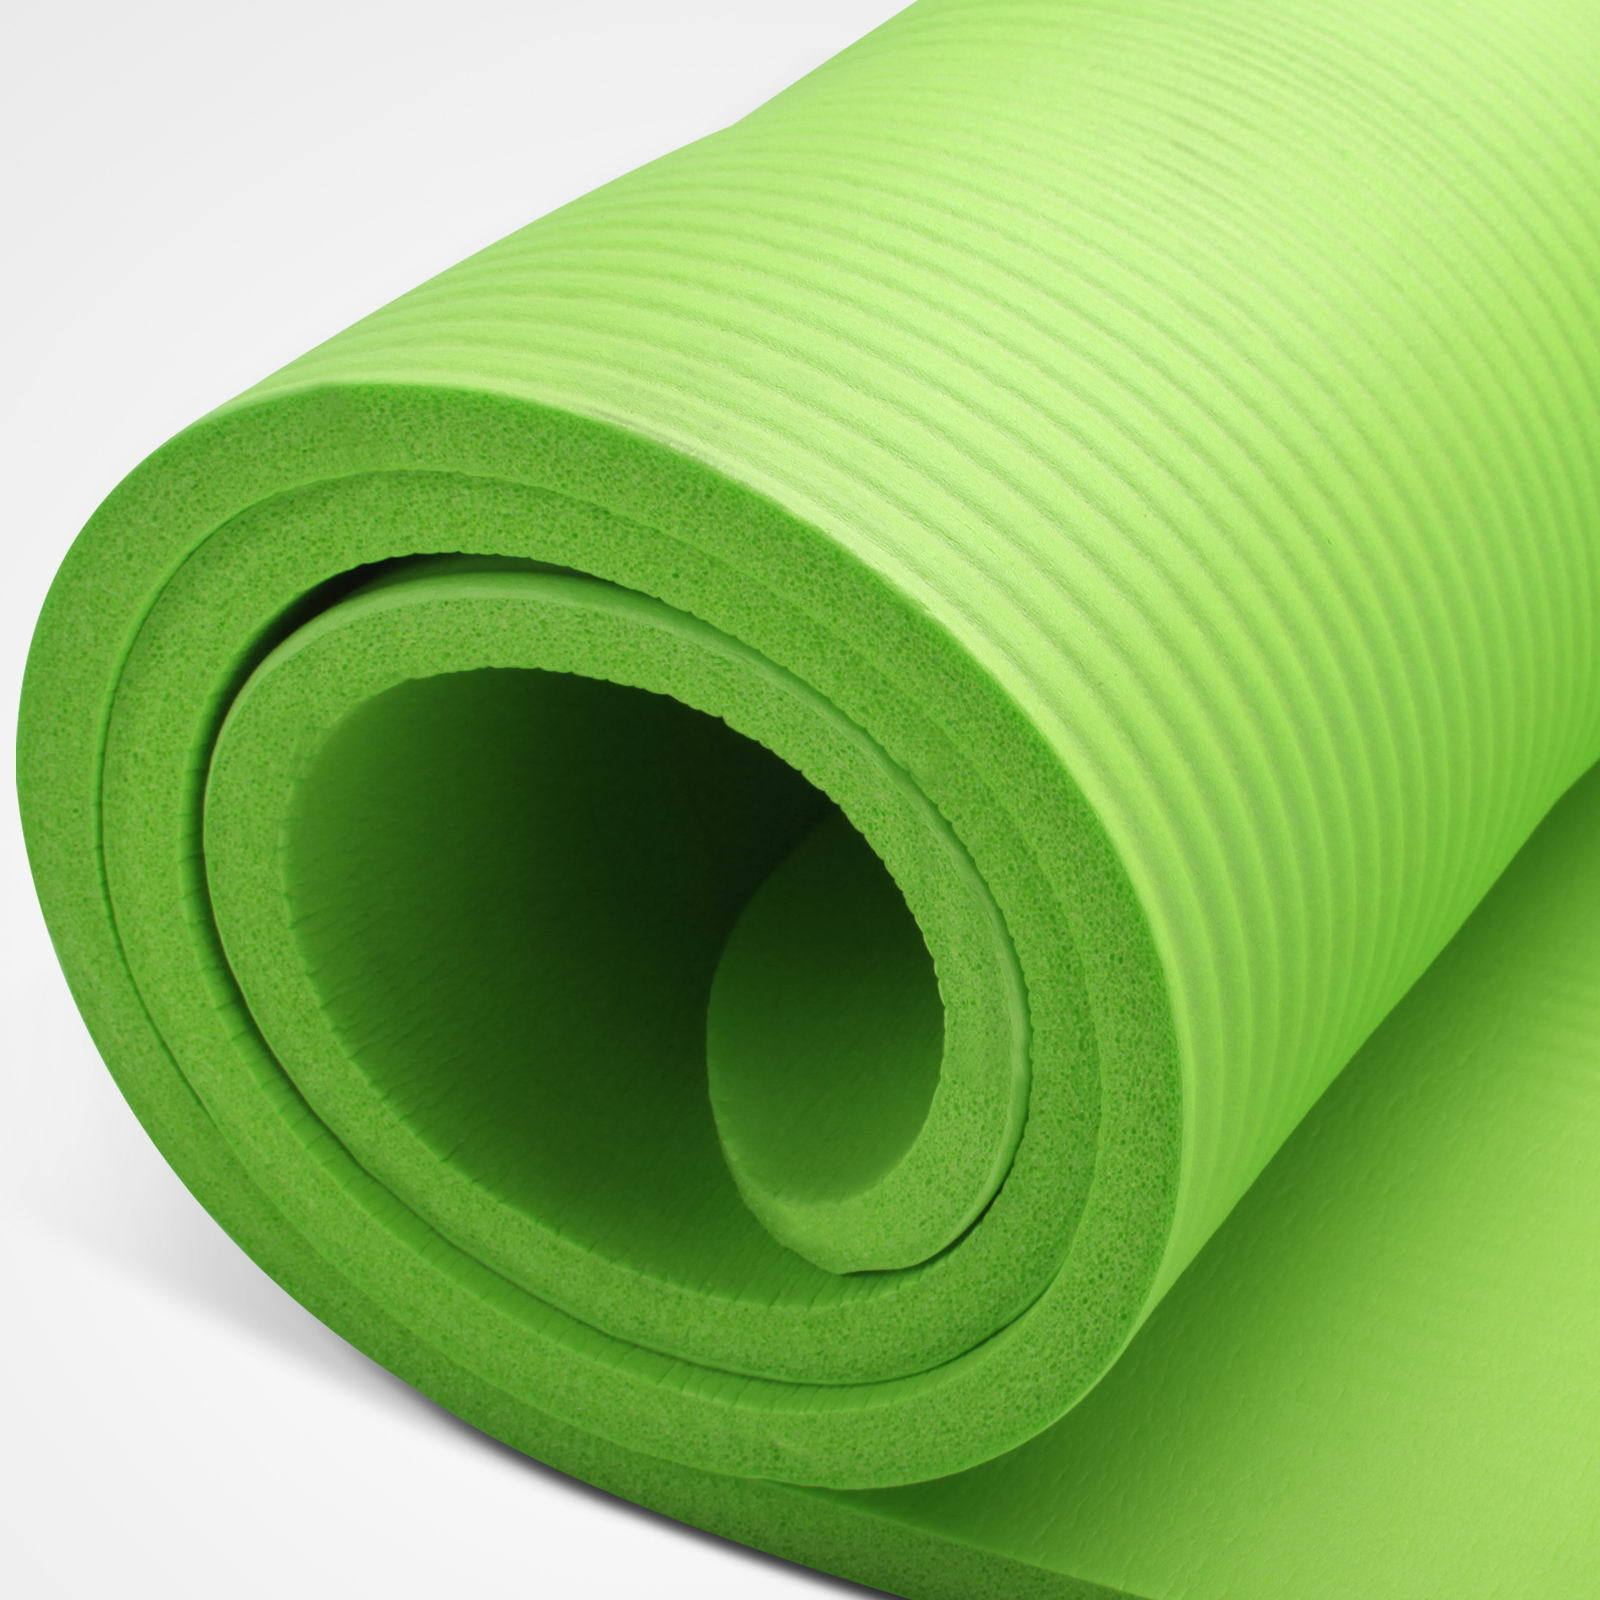 slip non itm thick yoga pilates mats mat be is ebay large just exercise loading image